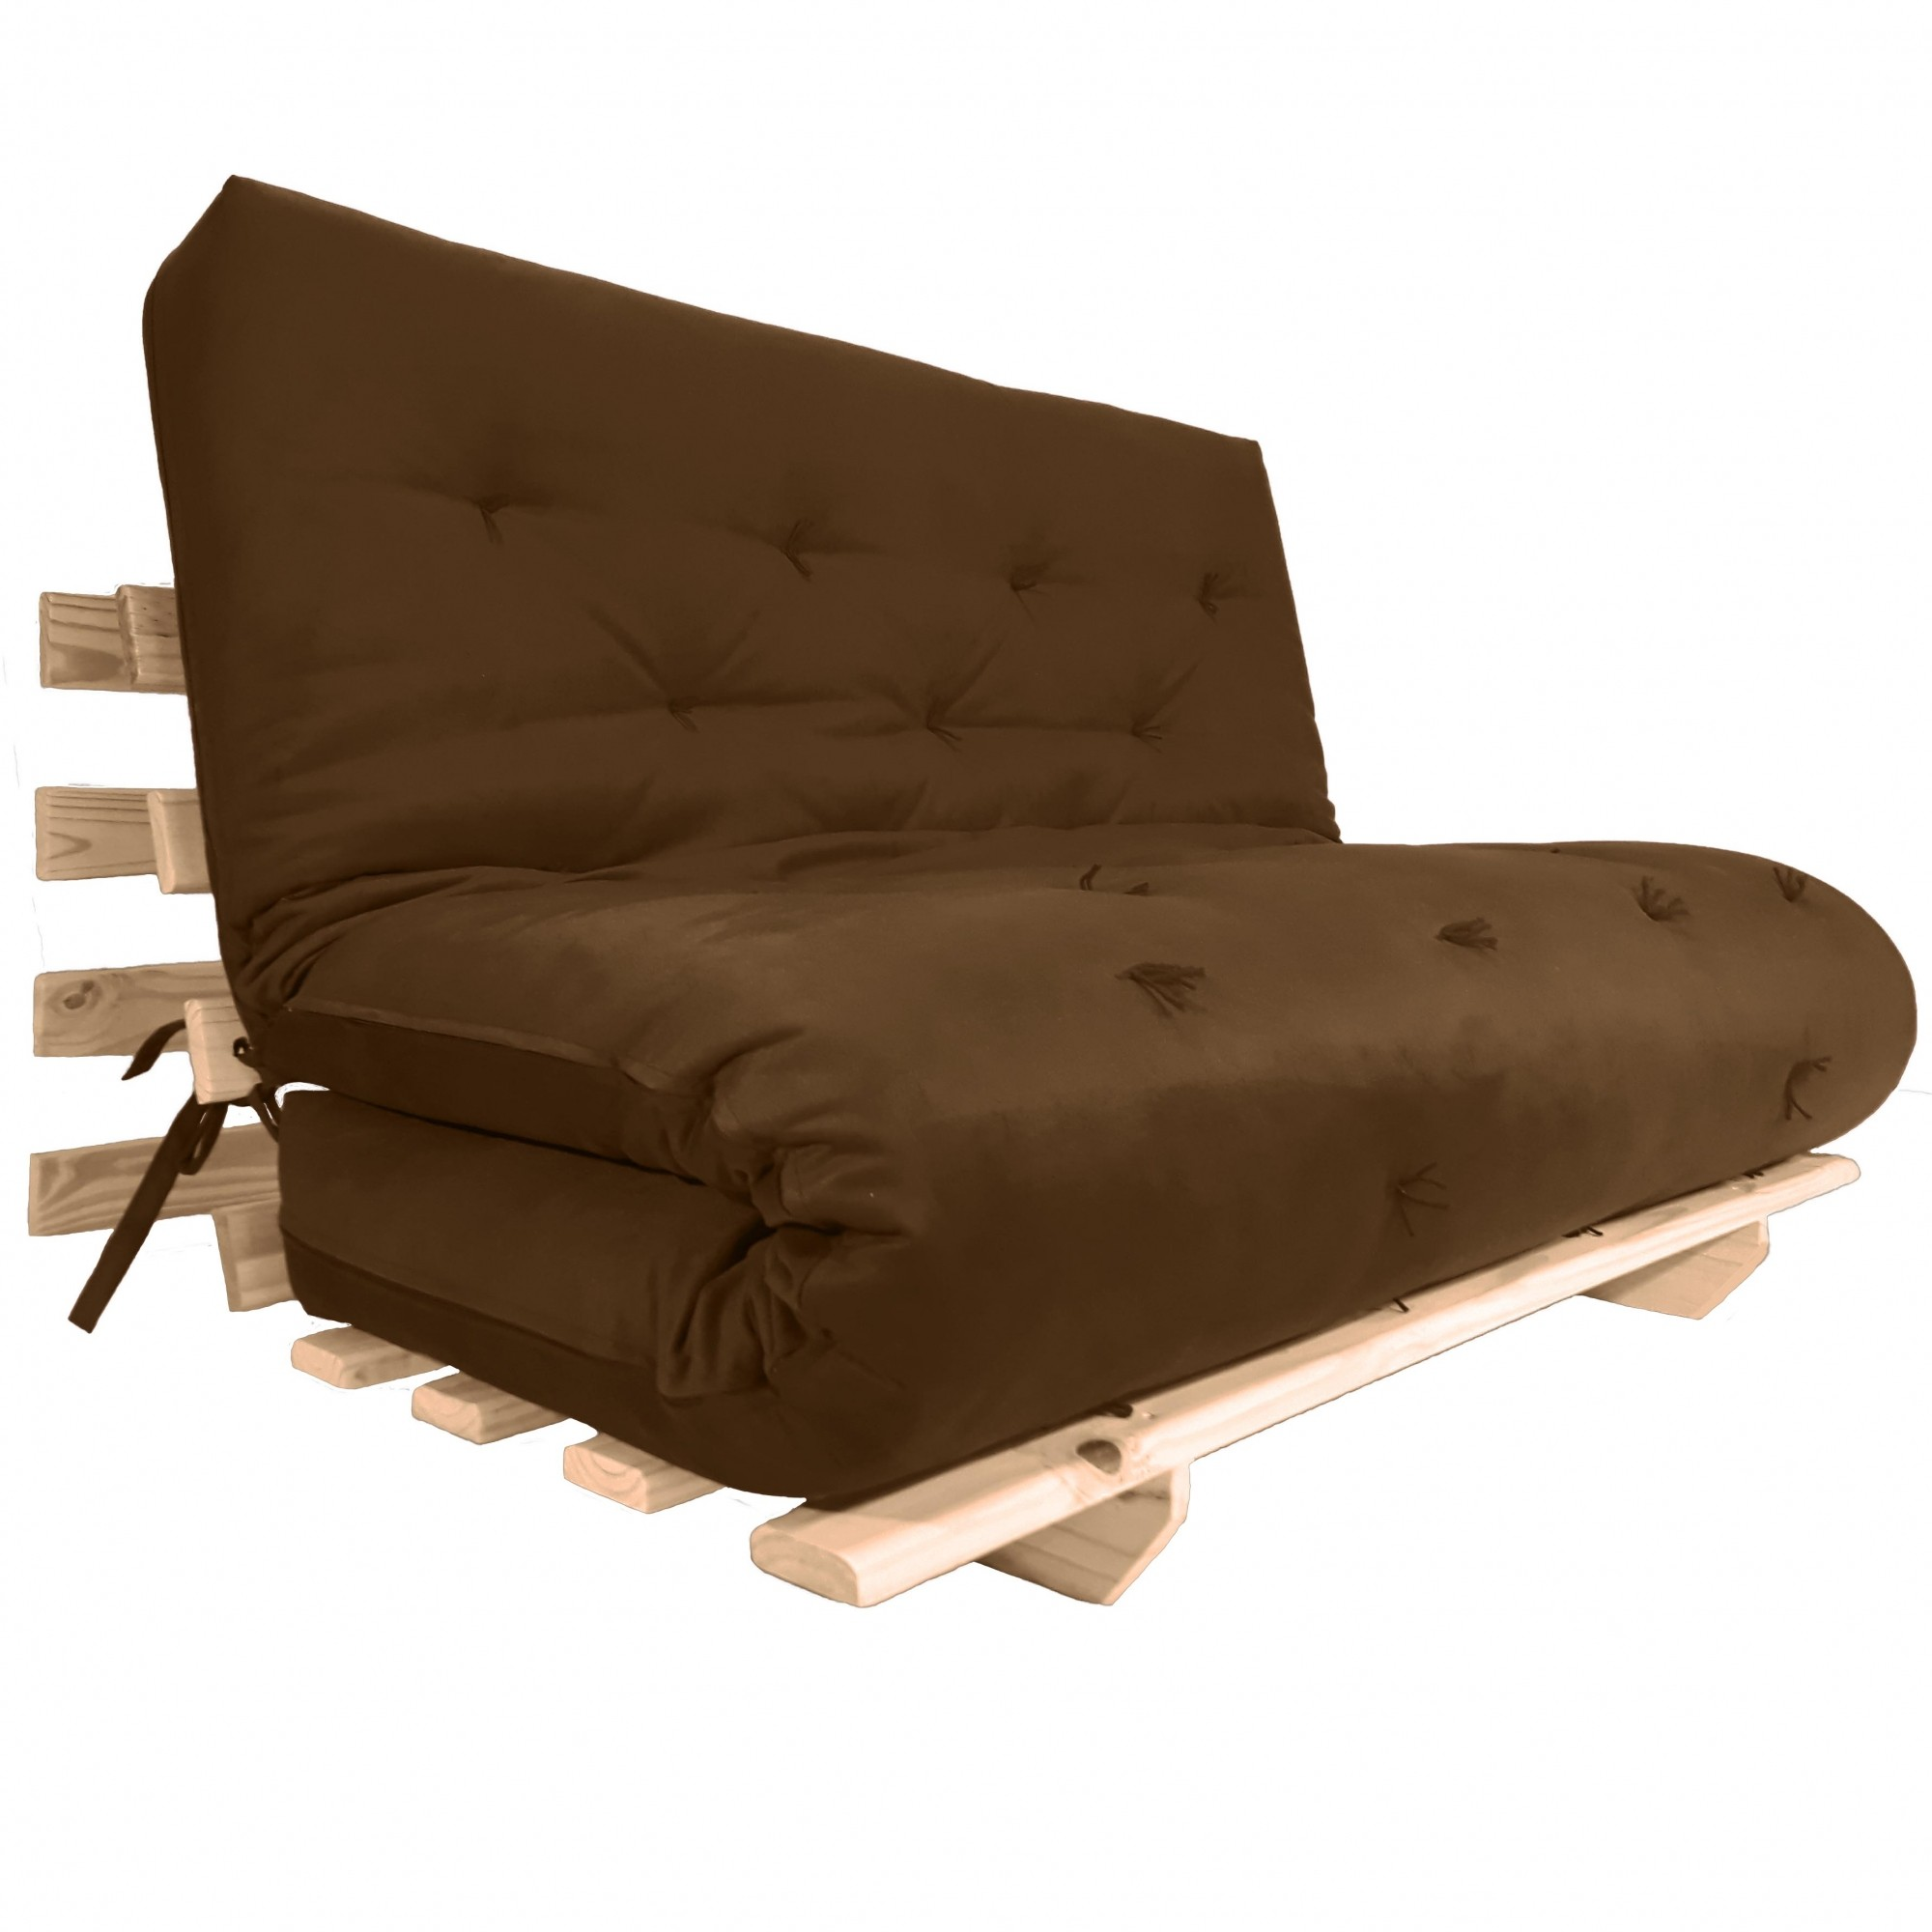 Sofa cama futon for Futon para sofa cama